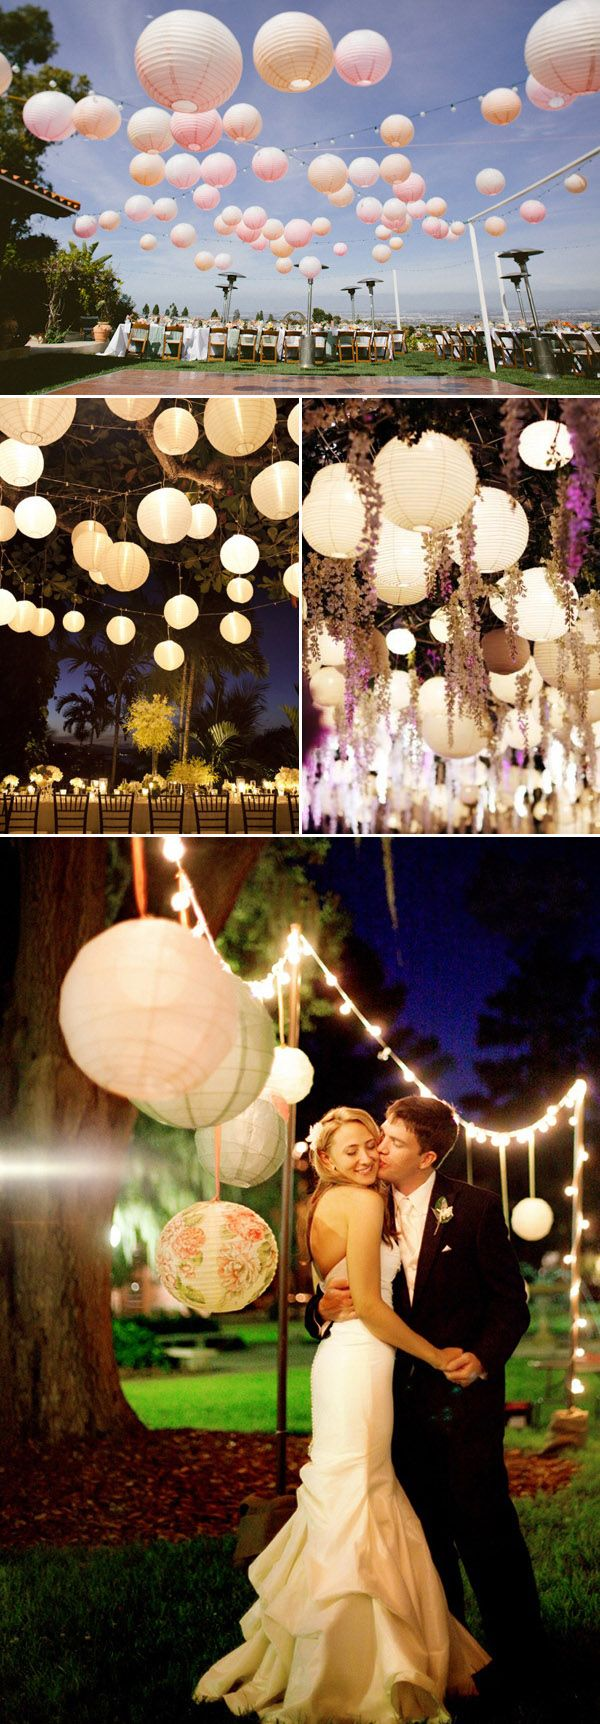 outdoor wedding decoration ideas with romantic floating lanterns